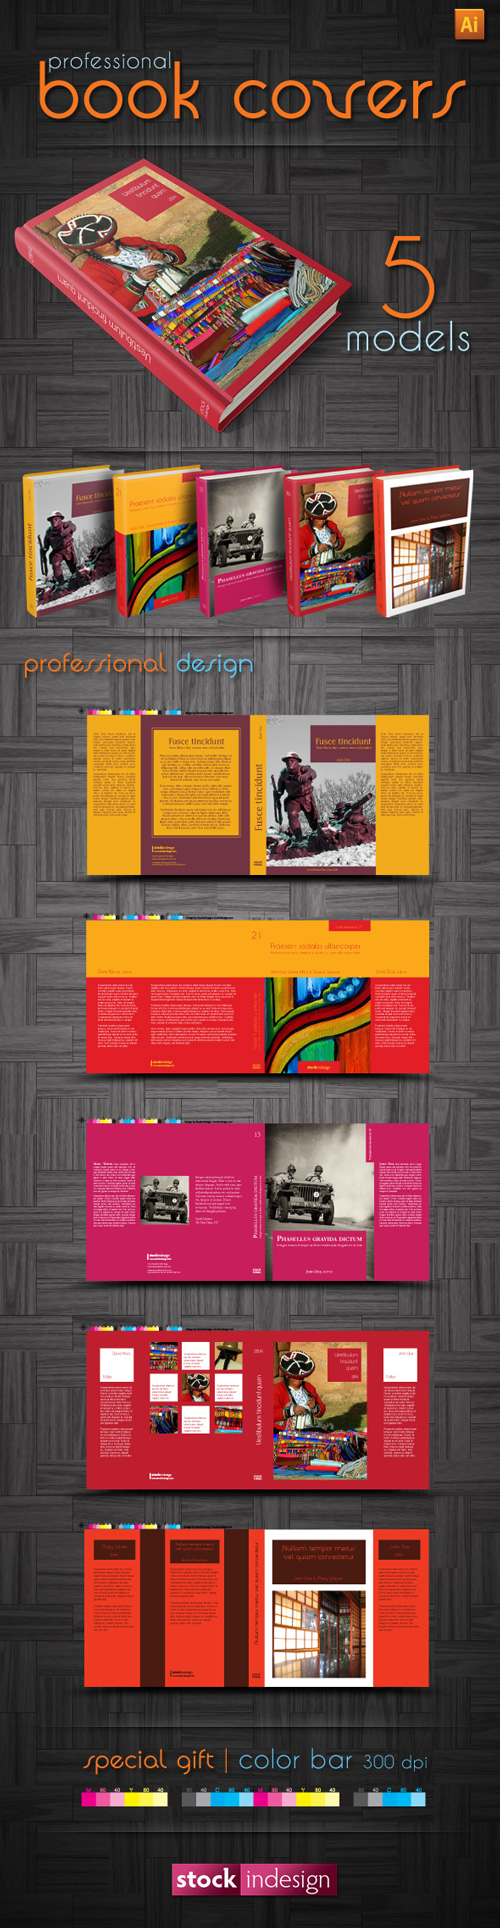 Book Cover Template Adobe Illustrator ~ Stockindesign illustrator book cover templates free